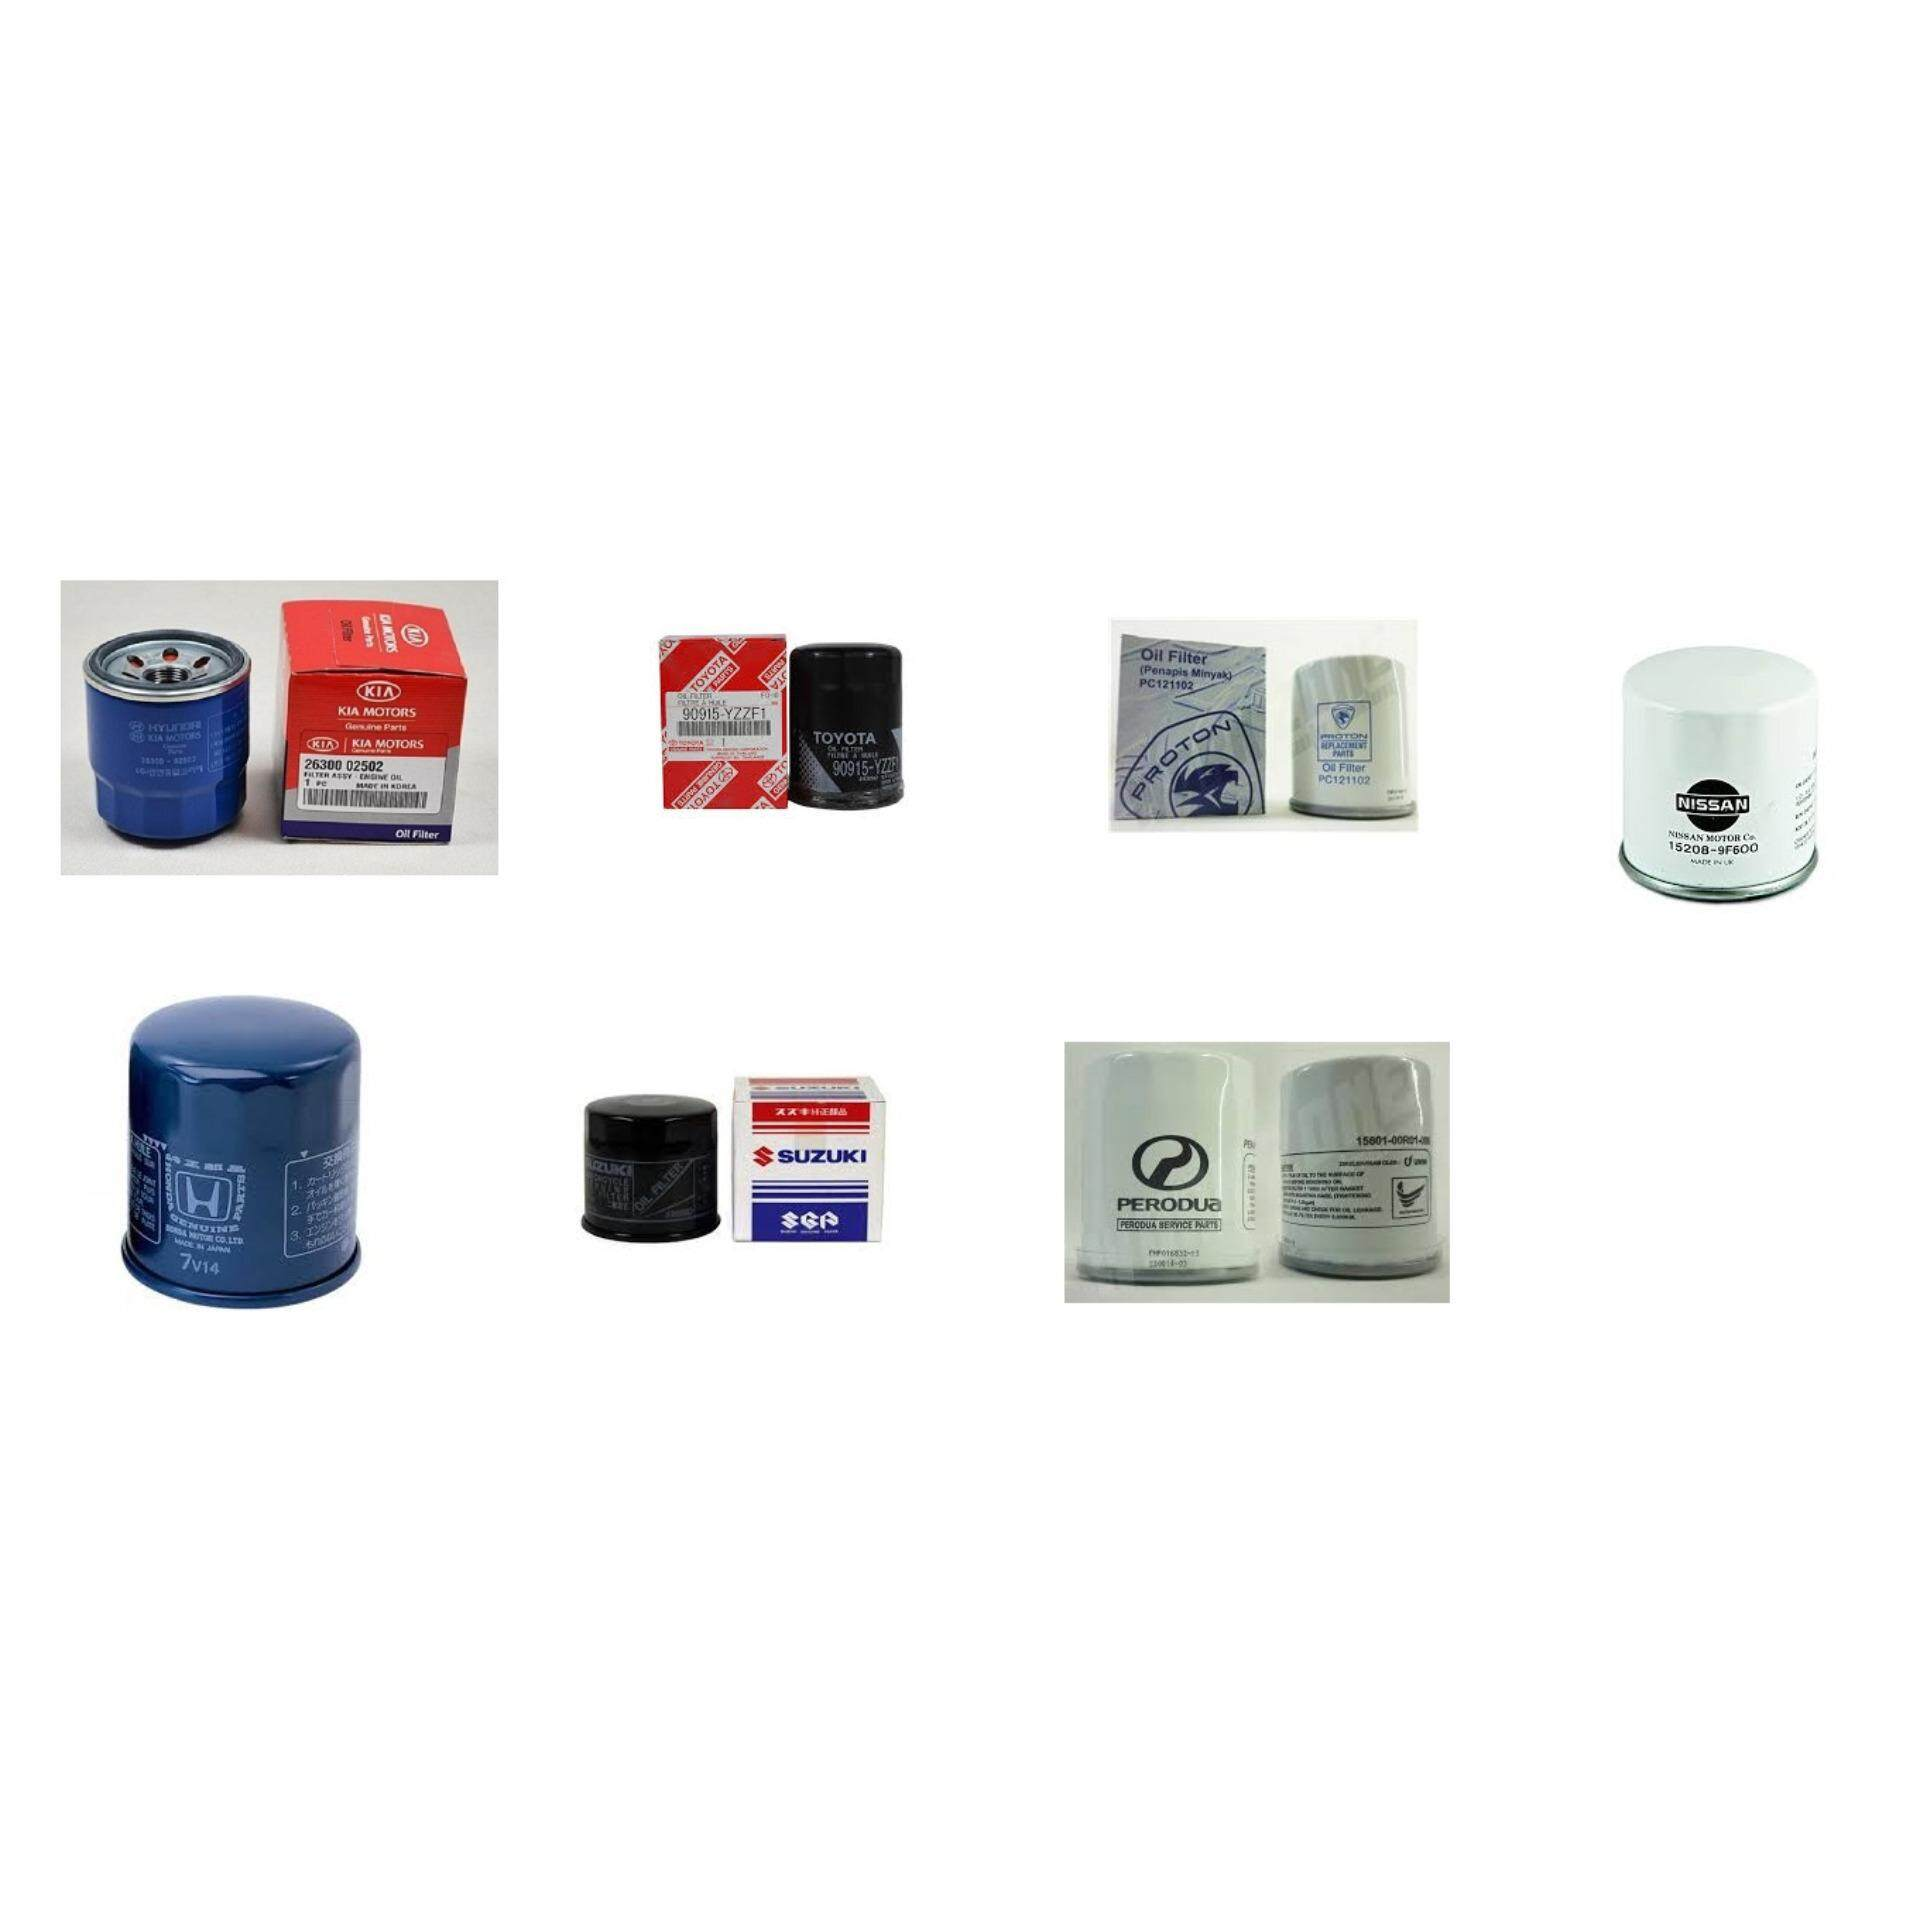 Shenzo Racing Oil 15W40 High-RPM 100% Synthetic (4L) Value Pack Original Oil Filter